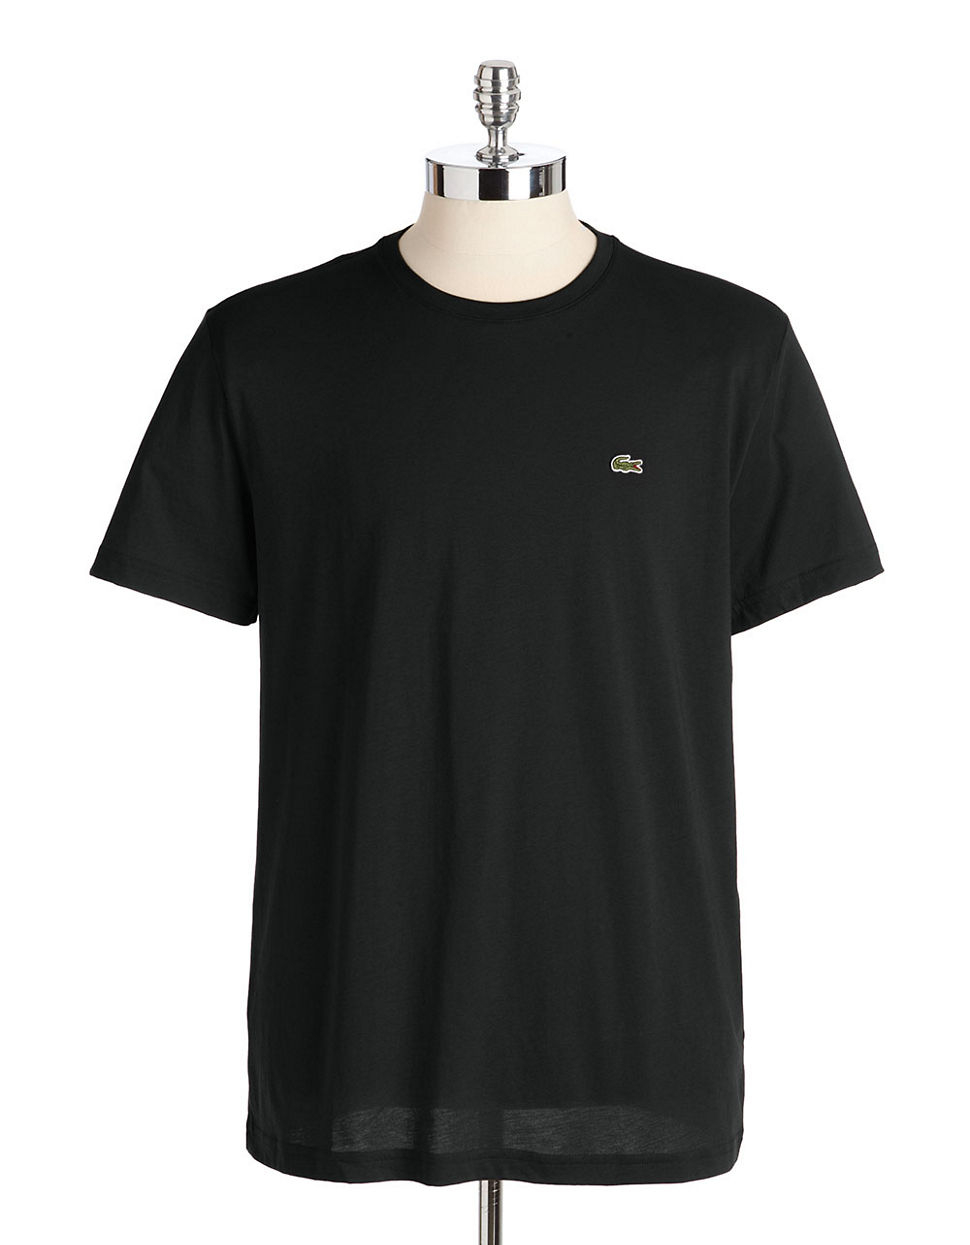 Lacoste Pima Cotton T Shirt In Black For Men Lyst